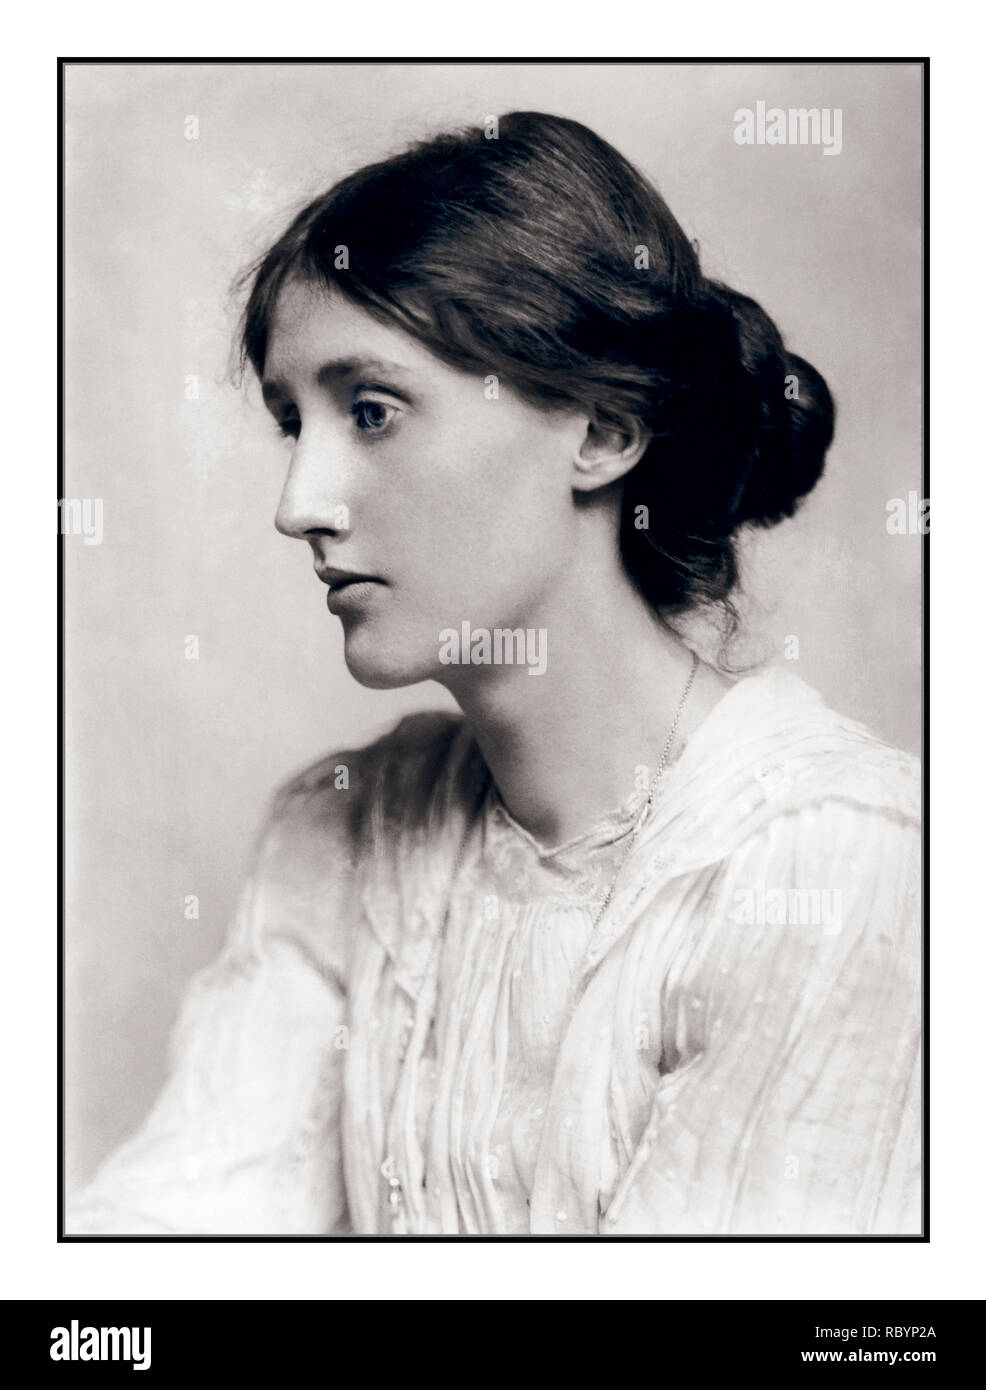 VIRGINIA WOOLF Archive B&W 1900's  Portrait of Virginia Woolf (January 25, 1882 – March 28, 1941), a British author and feminist, with her chignon. - Stock Image